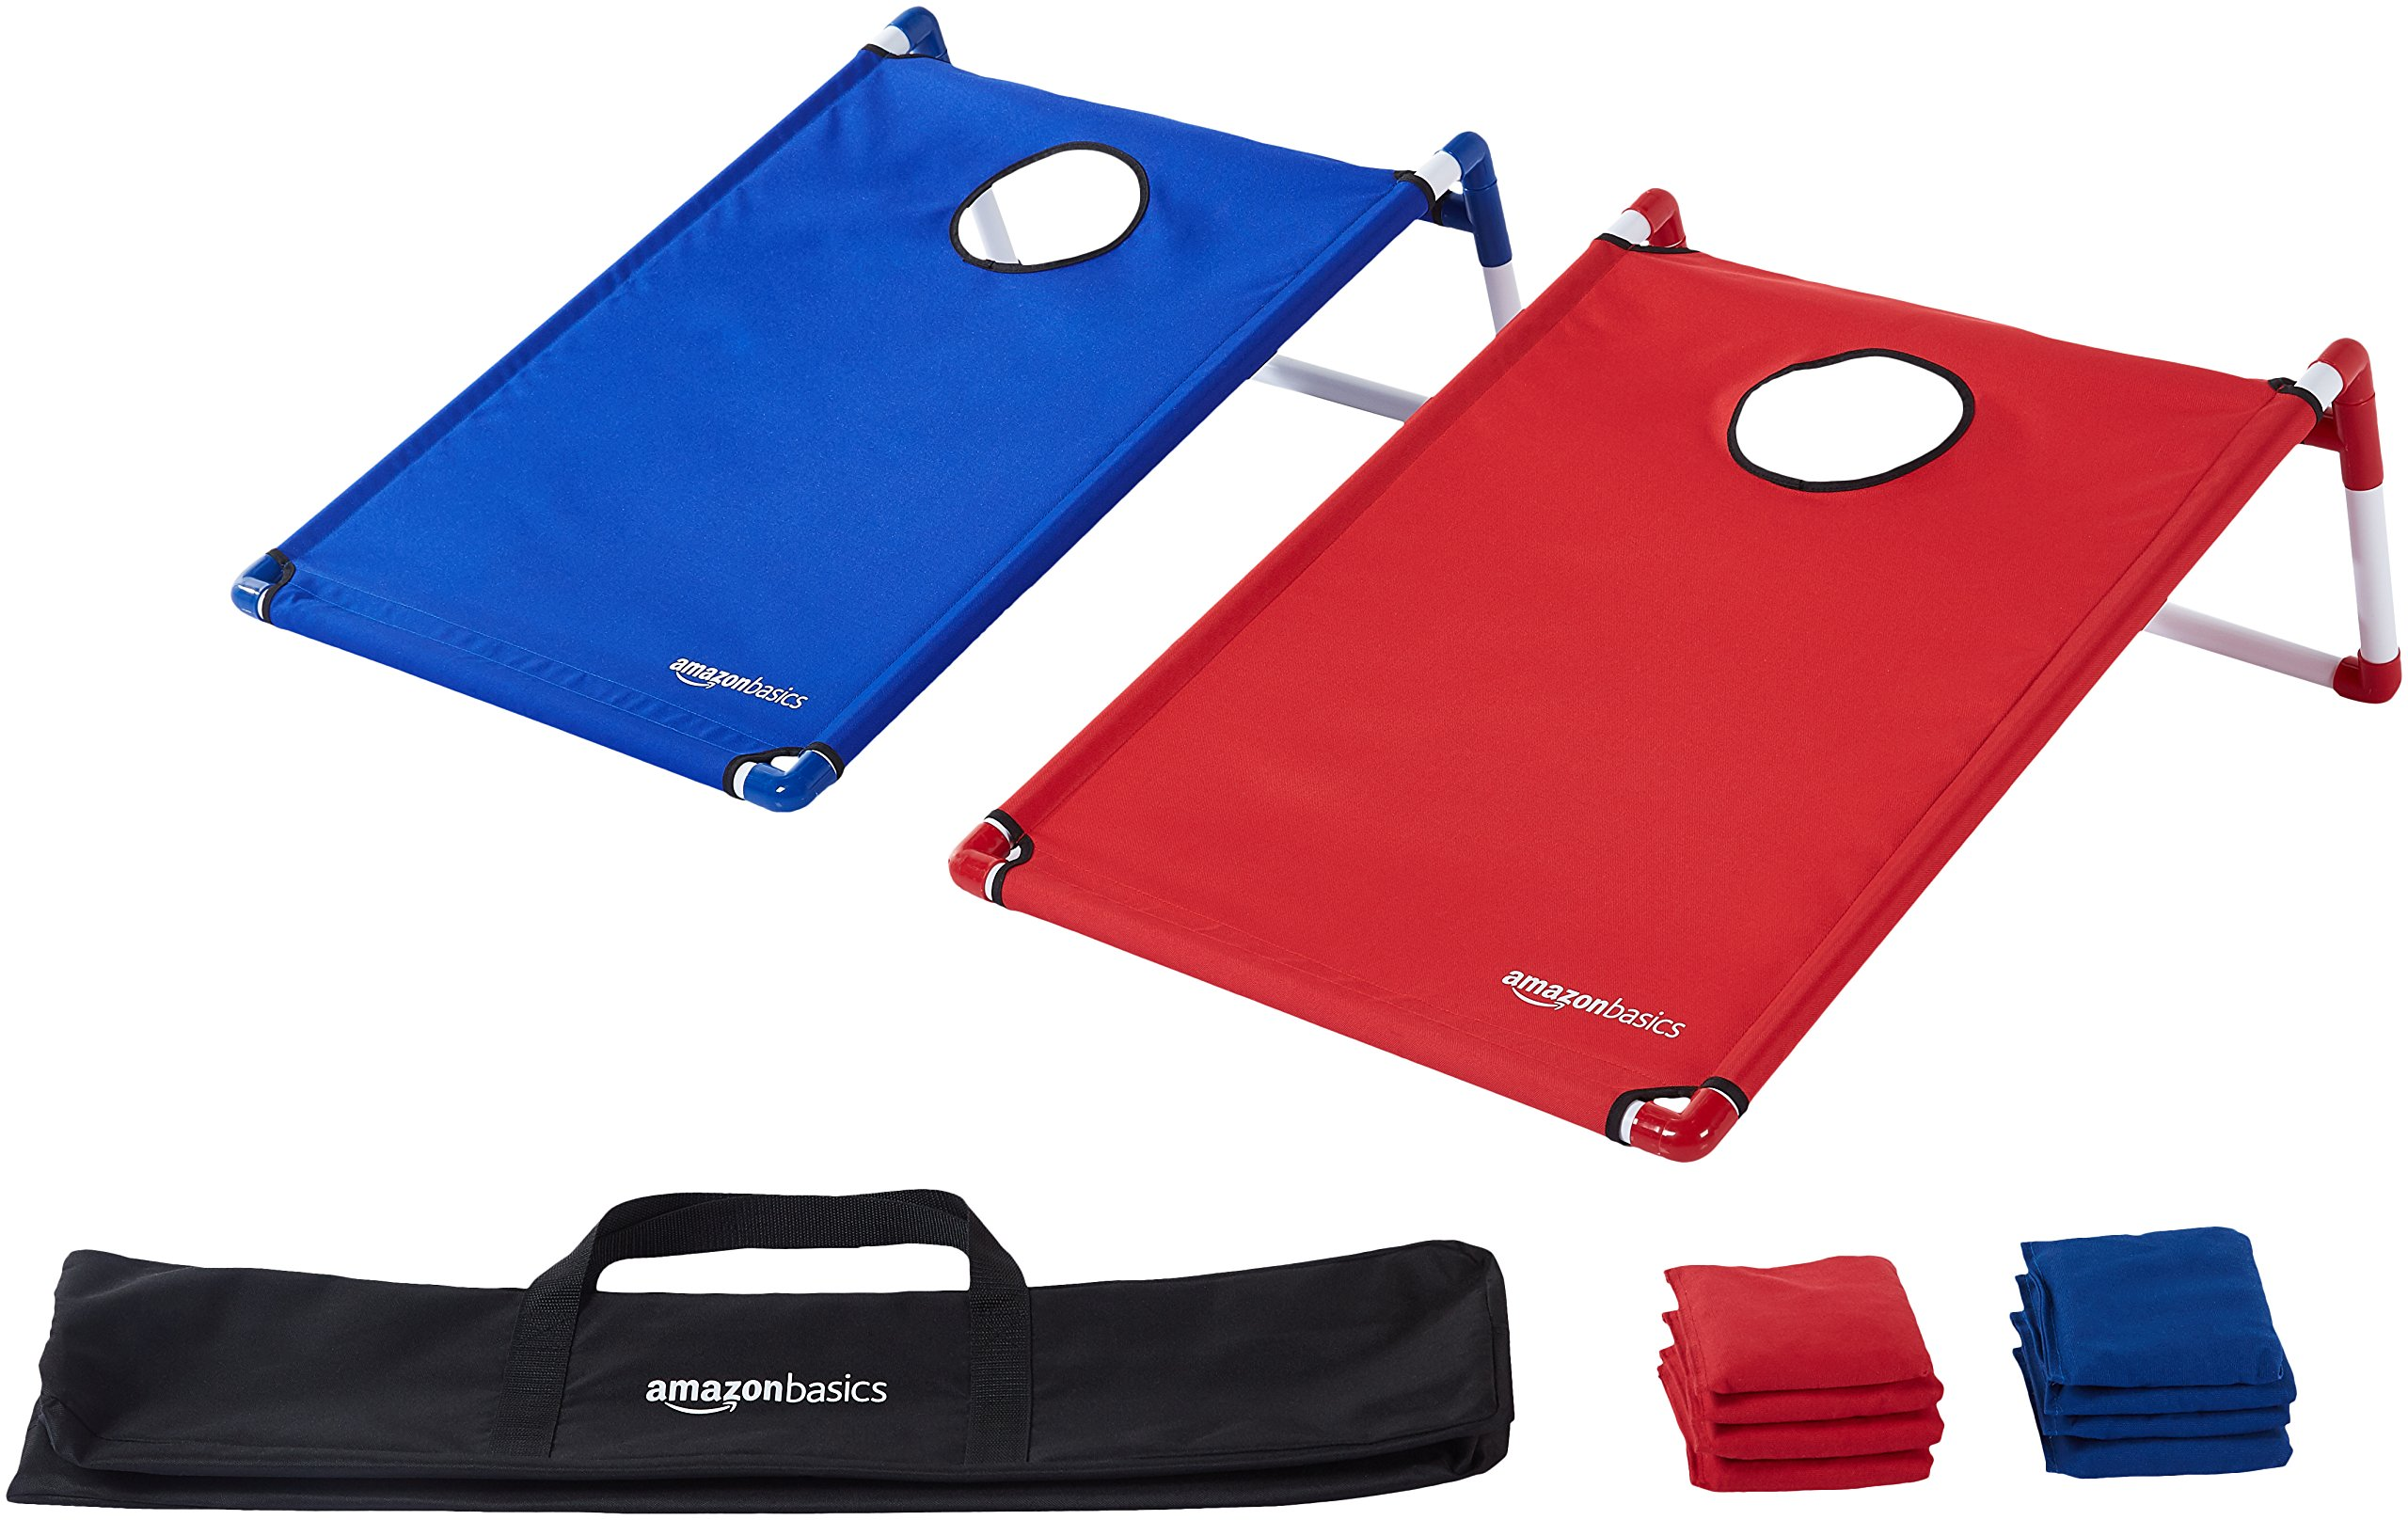 AmazonBasics Portable PVC Framed Cornhole Set by AmazonBasics